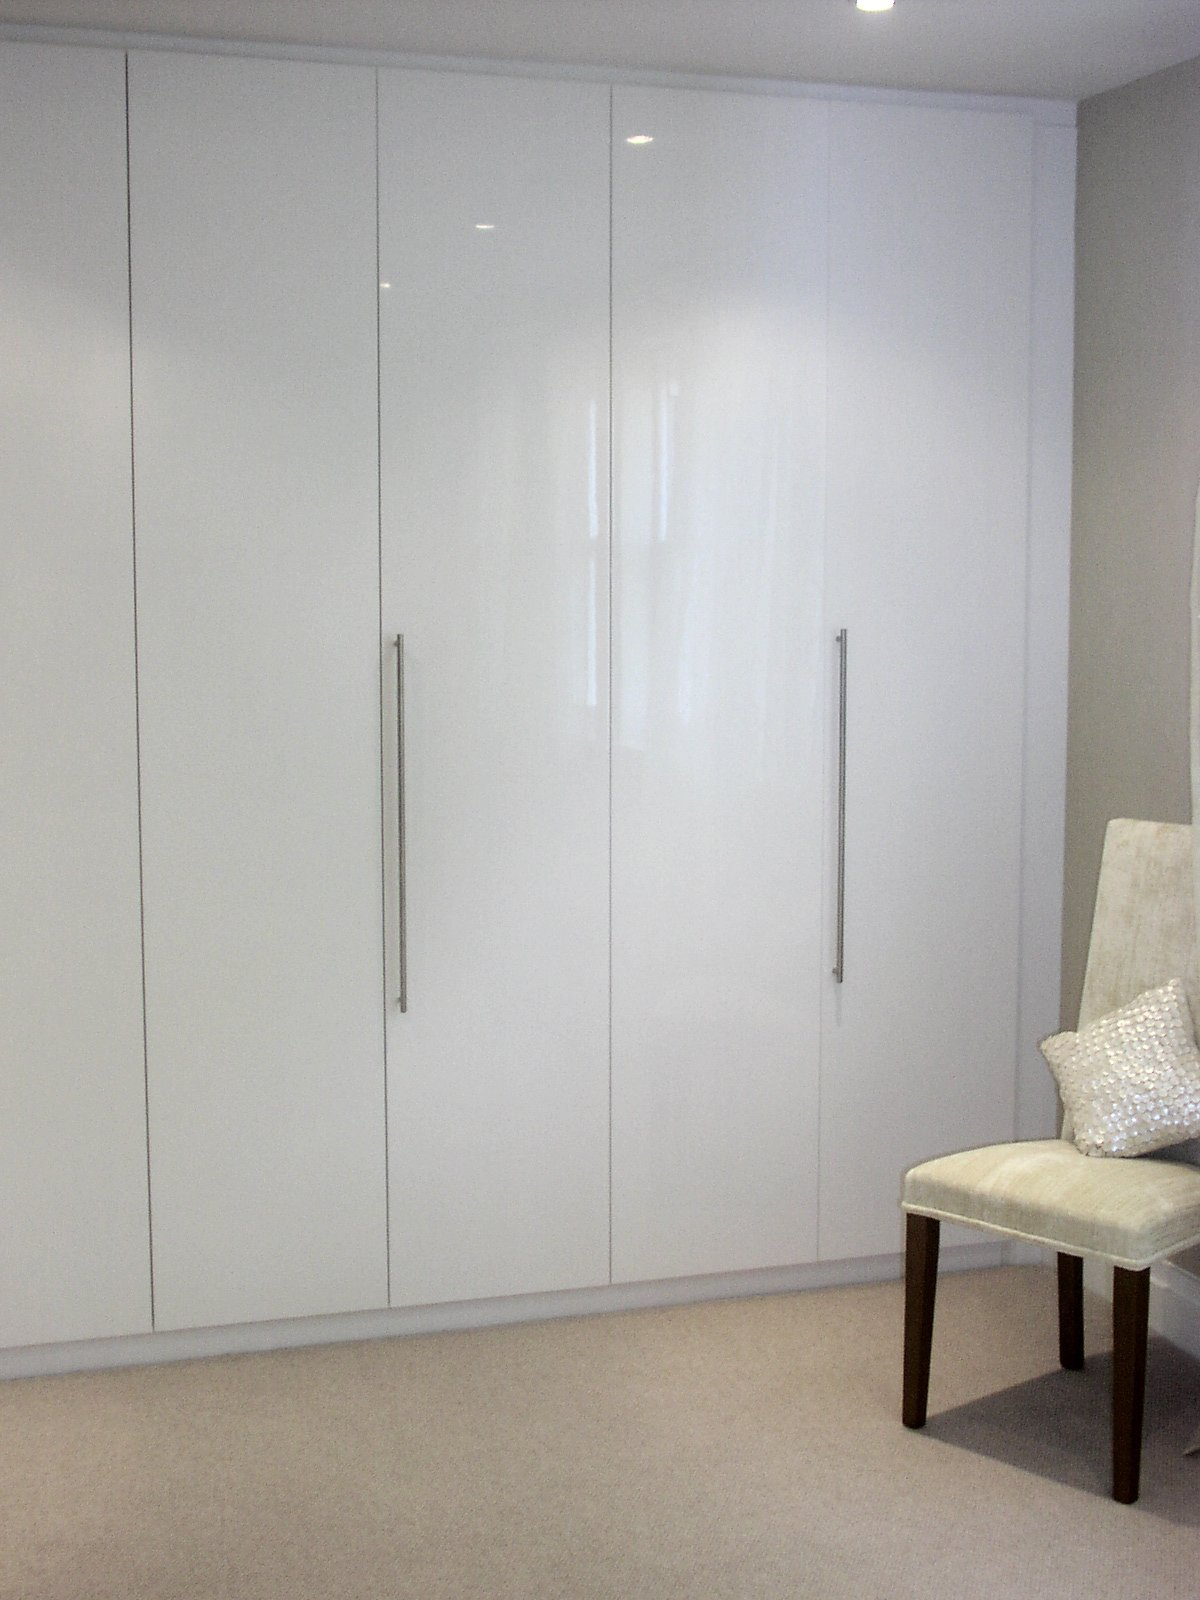 Special Buy Fitted Bedroom Furniture Wardrobes Uk Lawrence Walsh